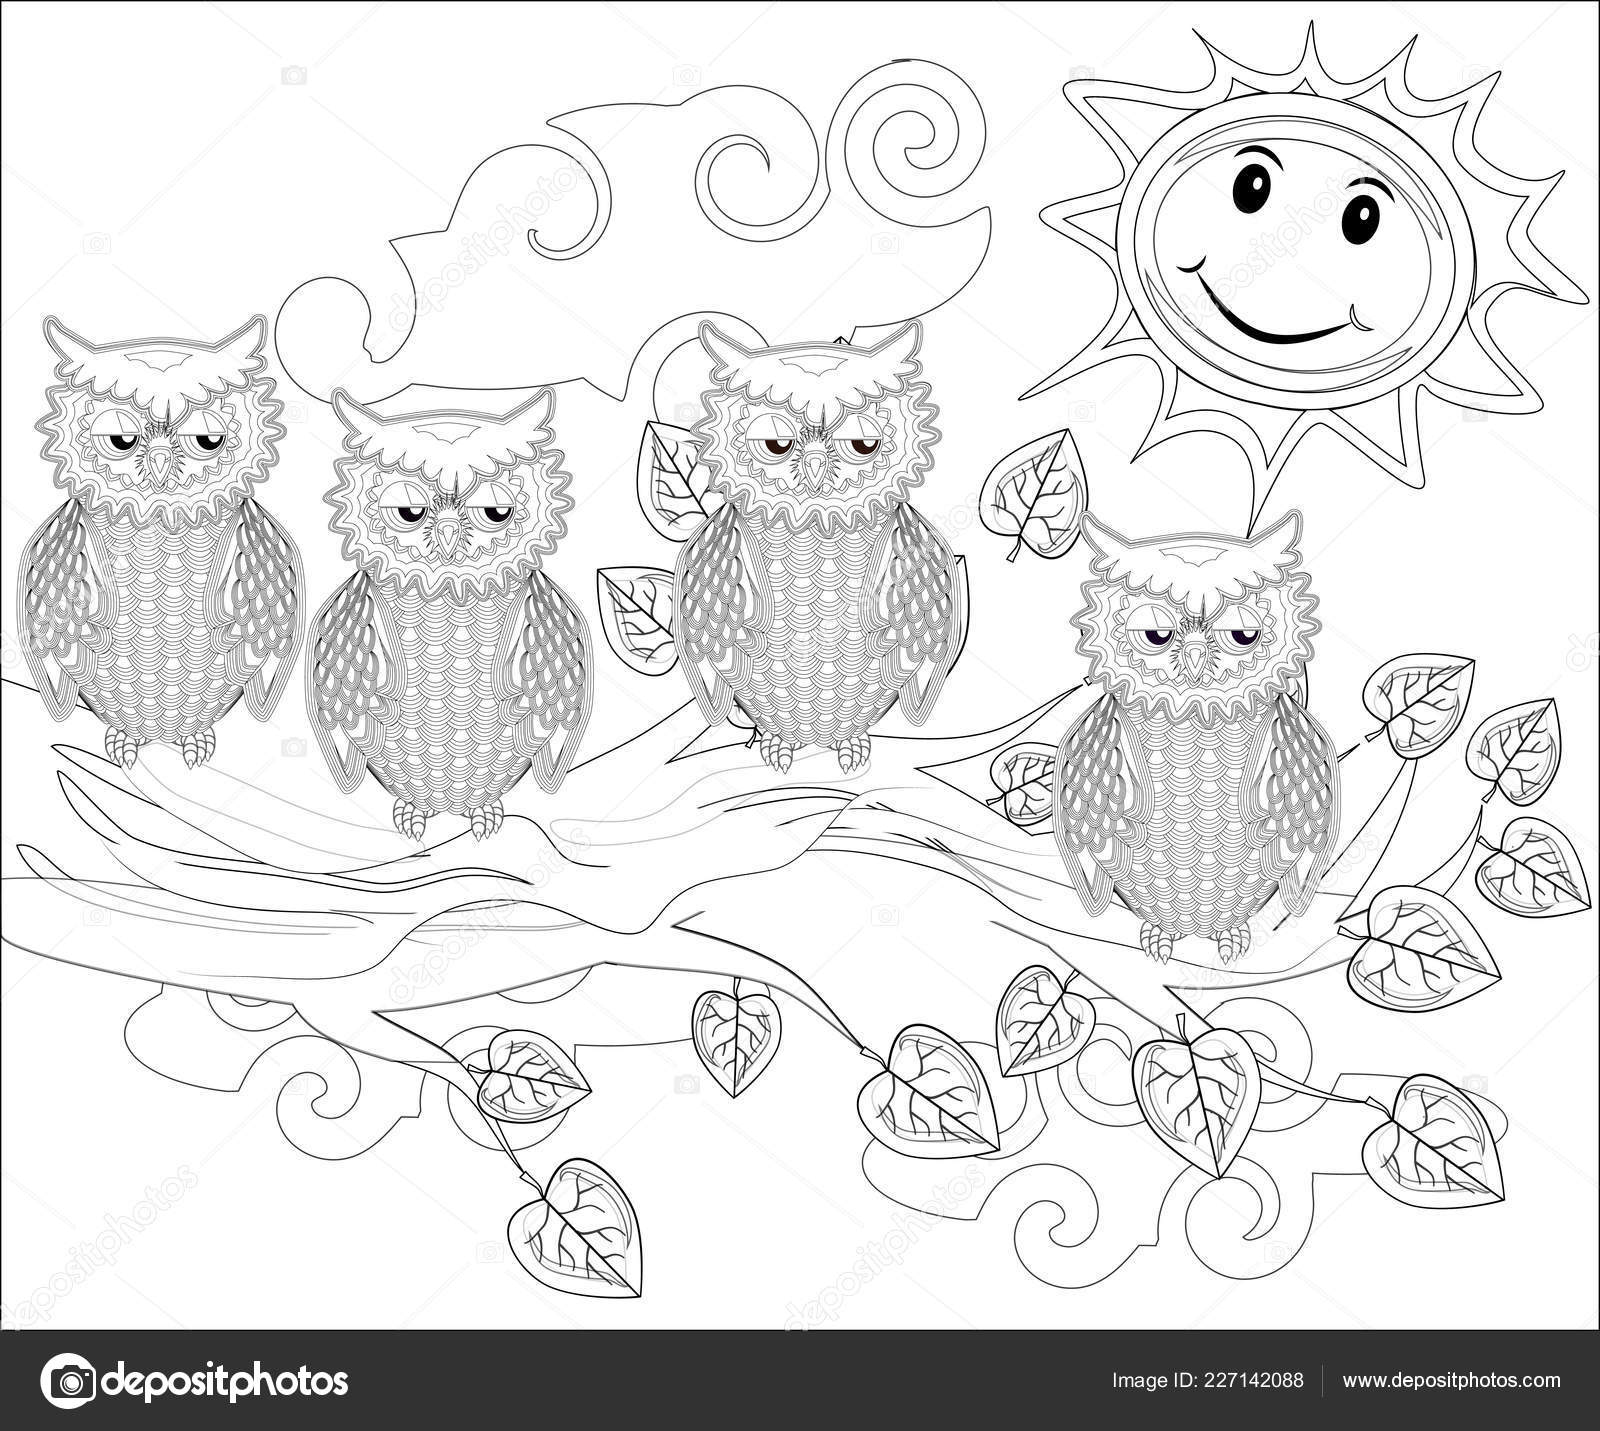 Coloring Pages Birds Cute Owl Sits Tree Stock Vector C Michiru13